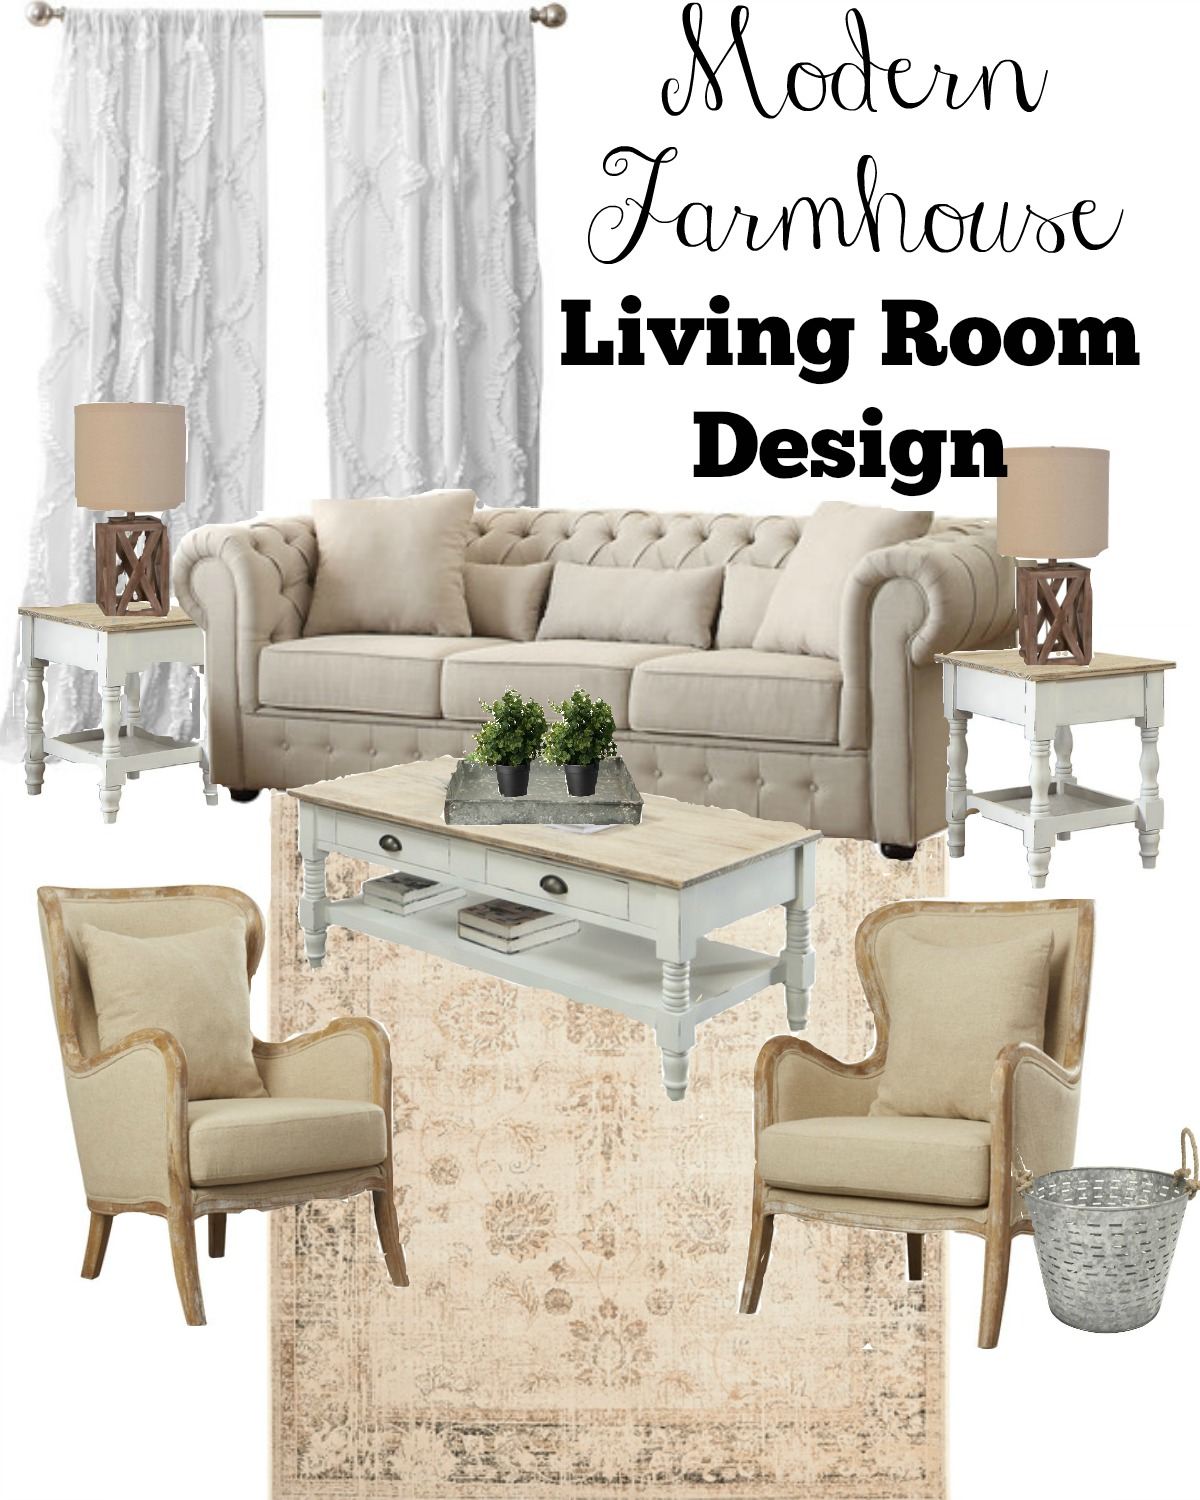 3 key tips for a farmhouse style living room - Modern Farmhouse Living Room